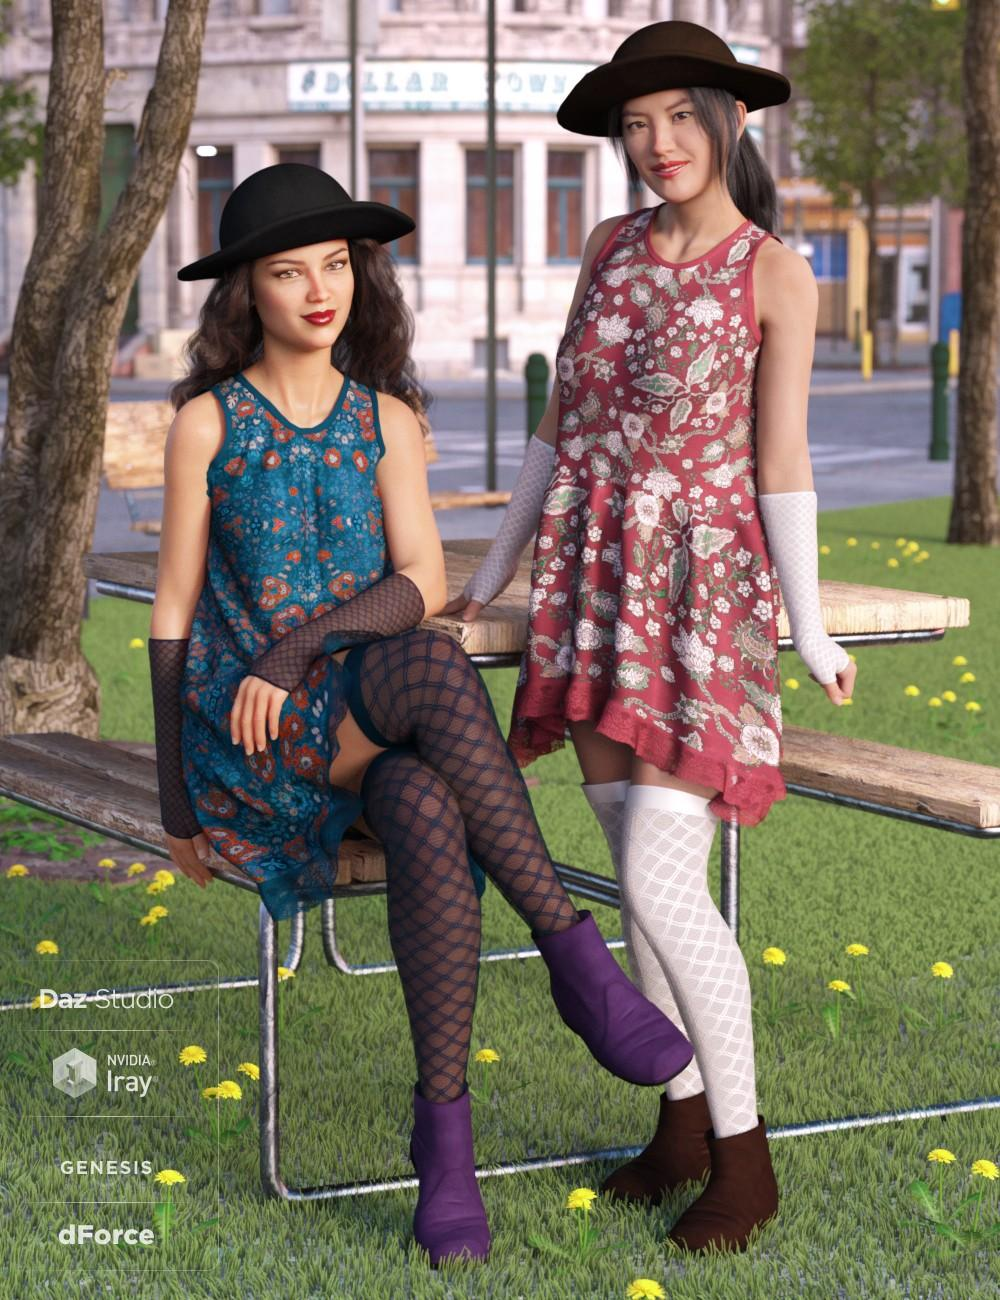 dForce Boho Days Outfit Textures (OziChick)